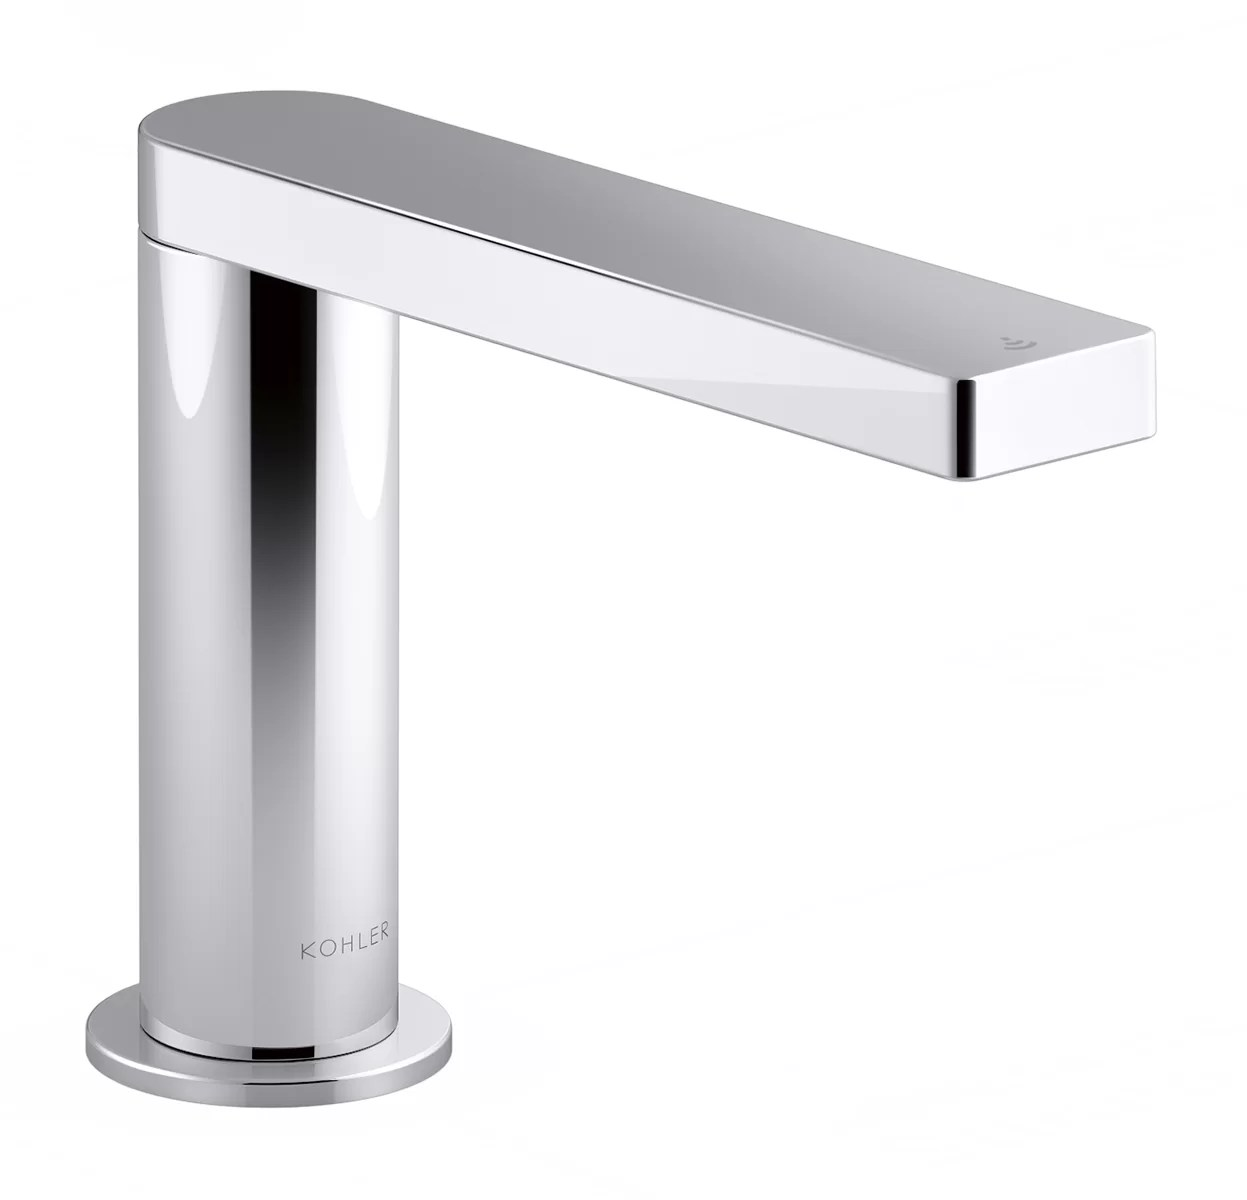 composed touchless bathroom sink faucet with kinesis sensor technology and mixer ac powered